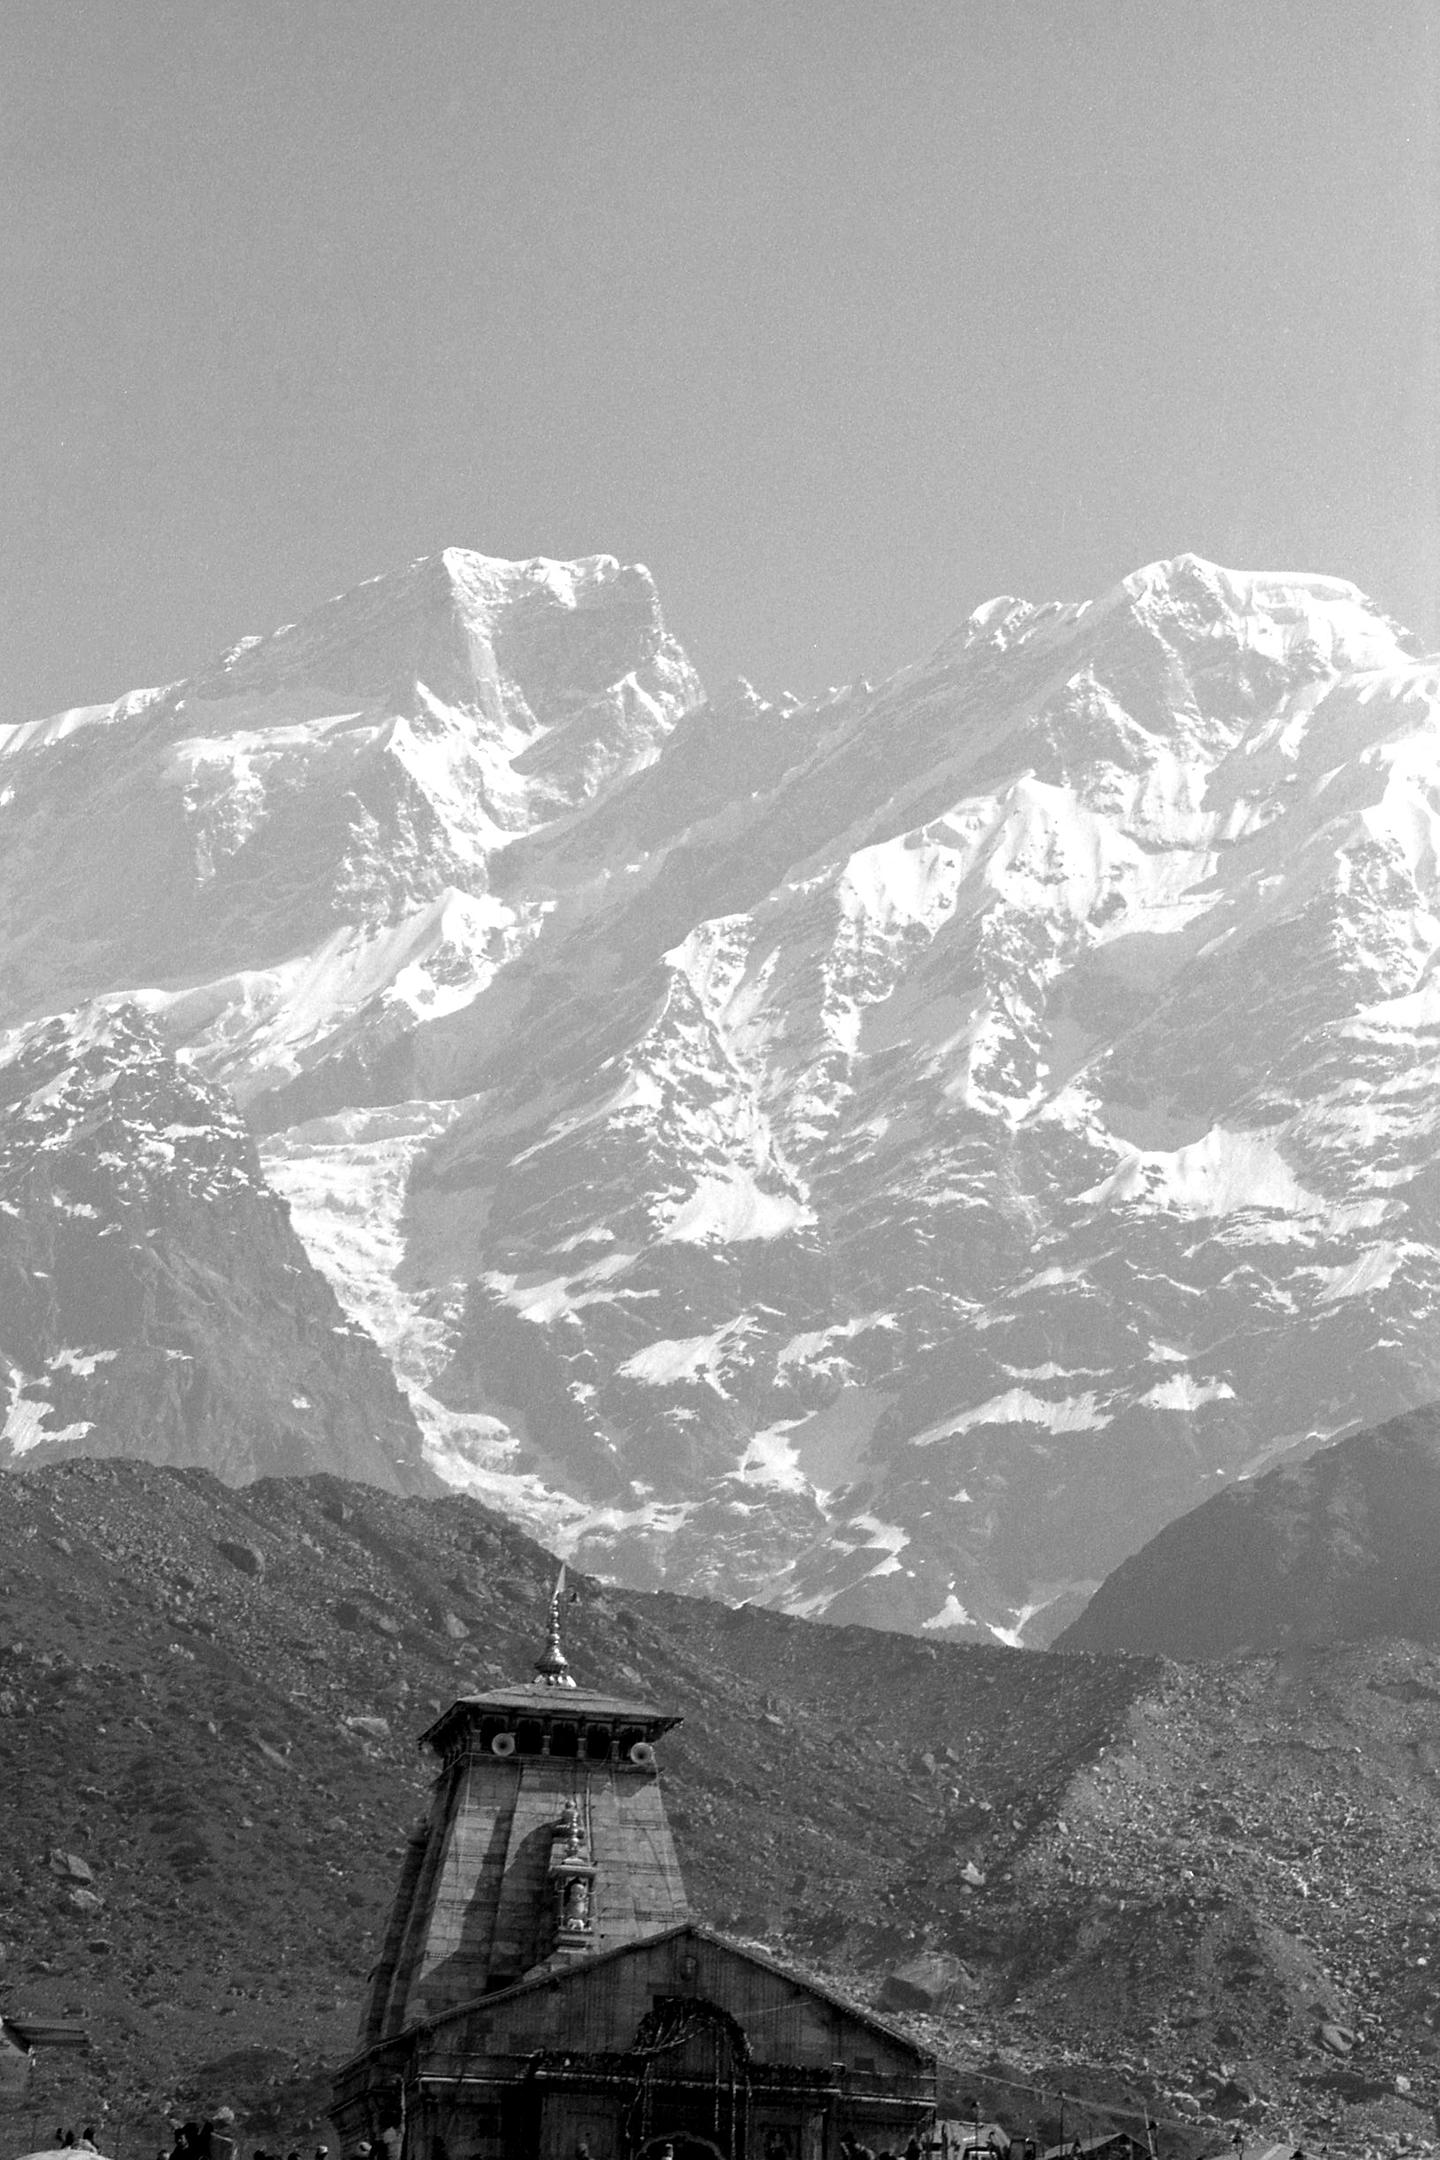 Divinty cradled by Himalayas,  Kedarnath 2019   Edition 1 of 10